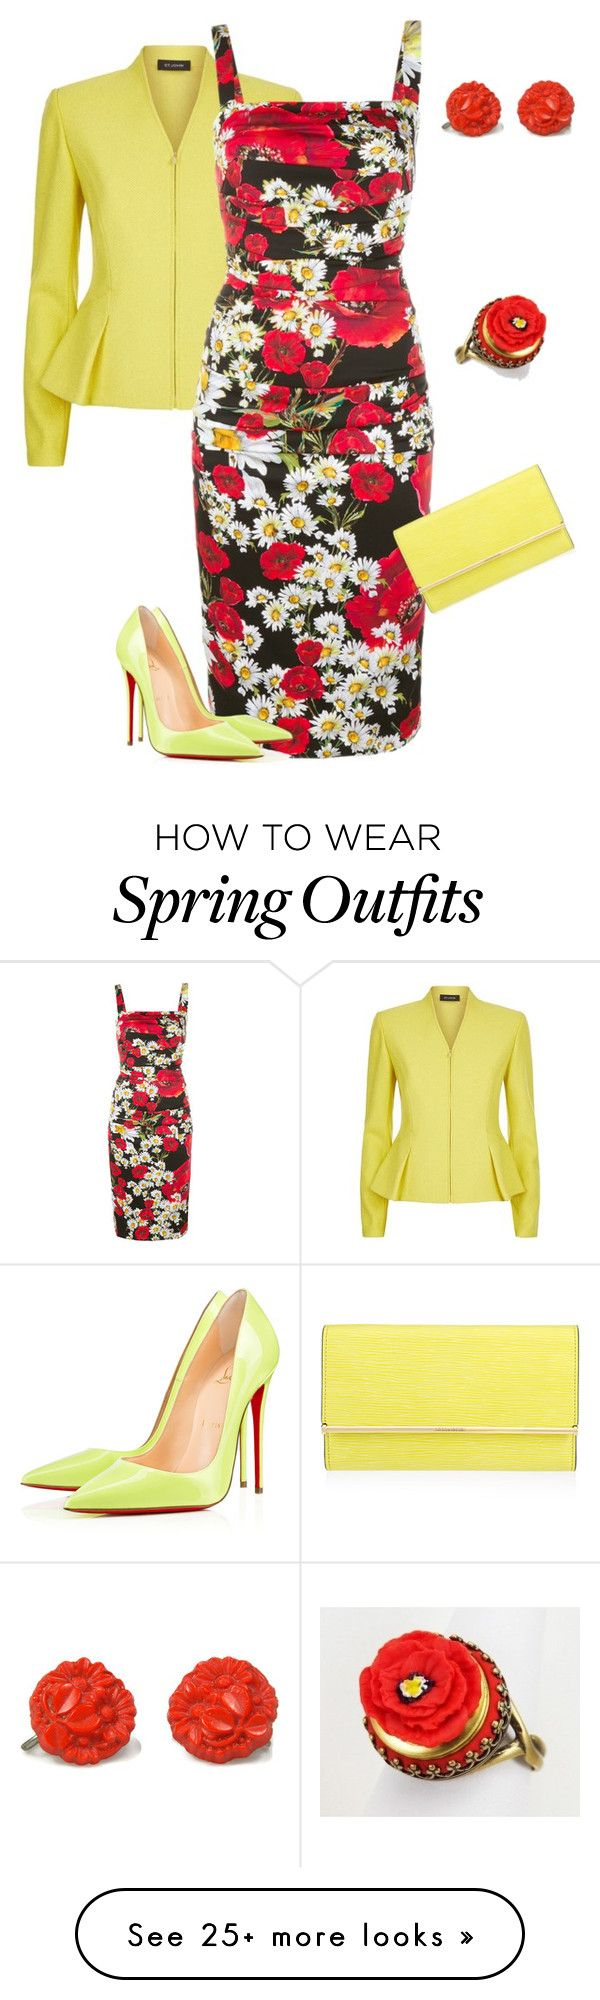 """outfit 3610"" by natalyag on Polyvore featuring St. John, Dolce&Gabbana and Henri Bendel"